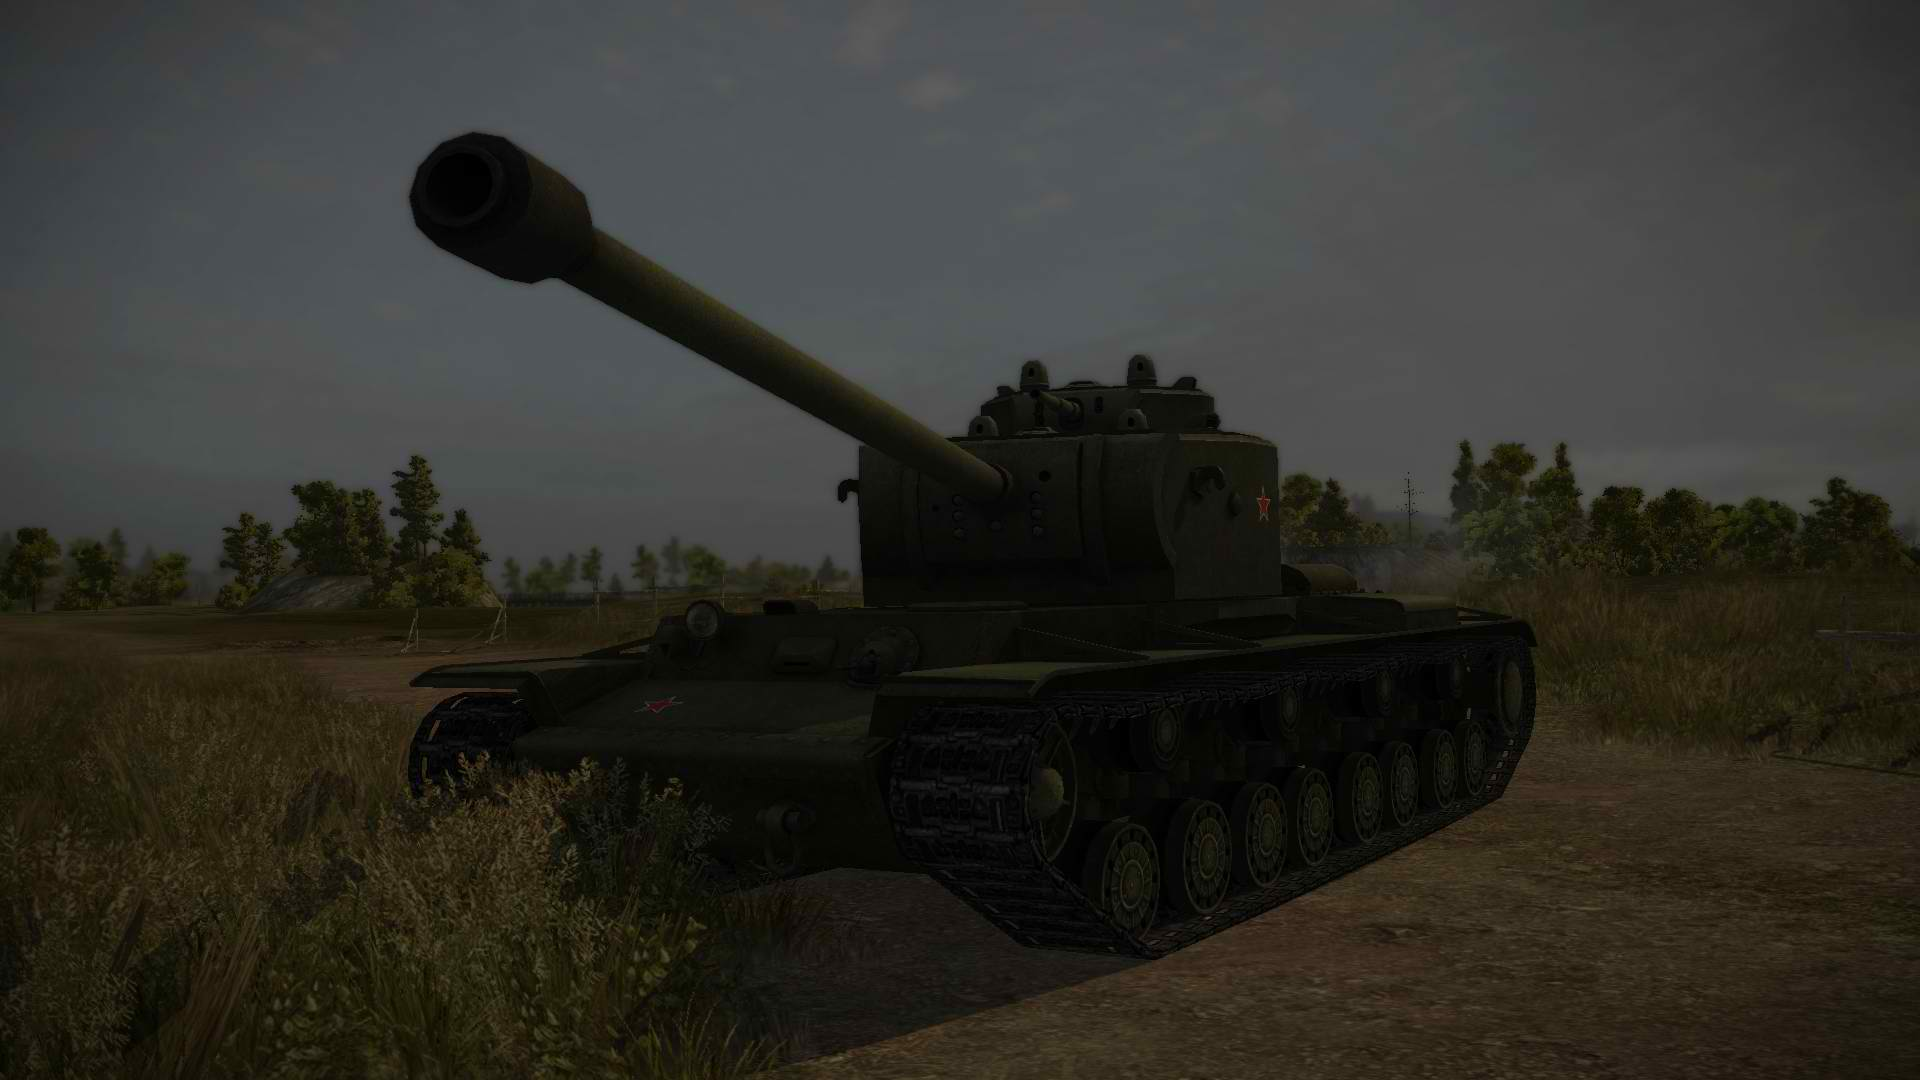 world of tanks kv 5 matchmaking Alt+click first and target tanks to calculate research cost goharu   forum english.